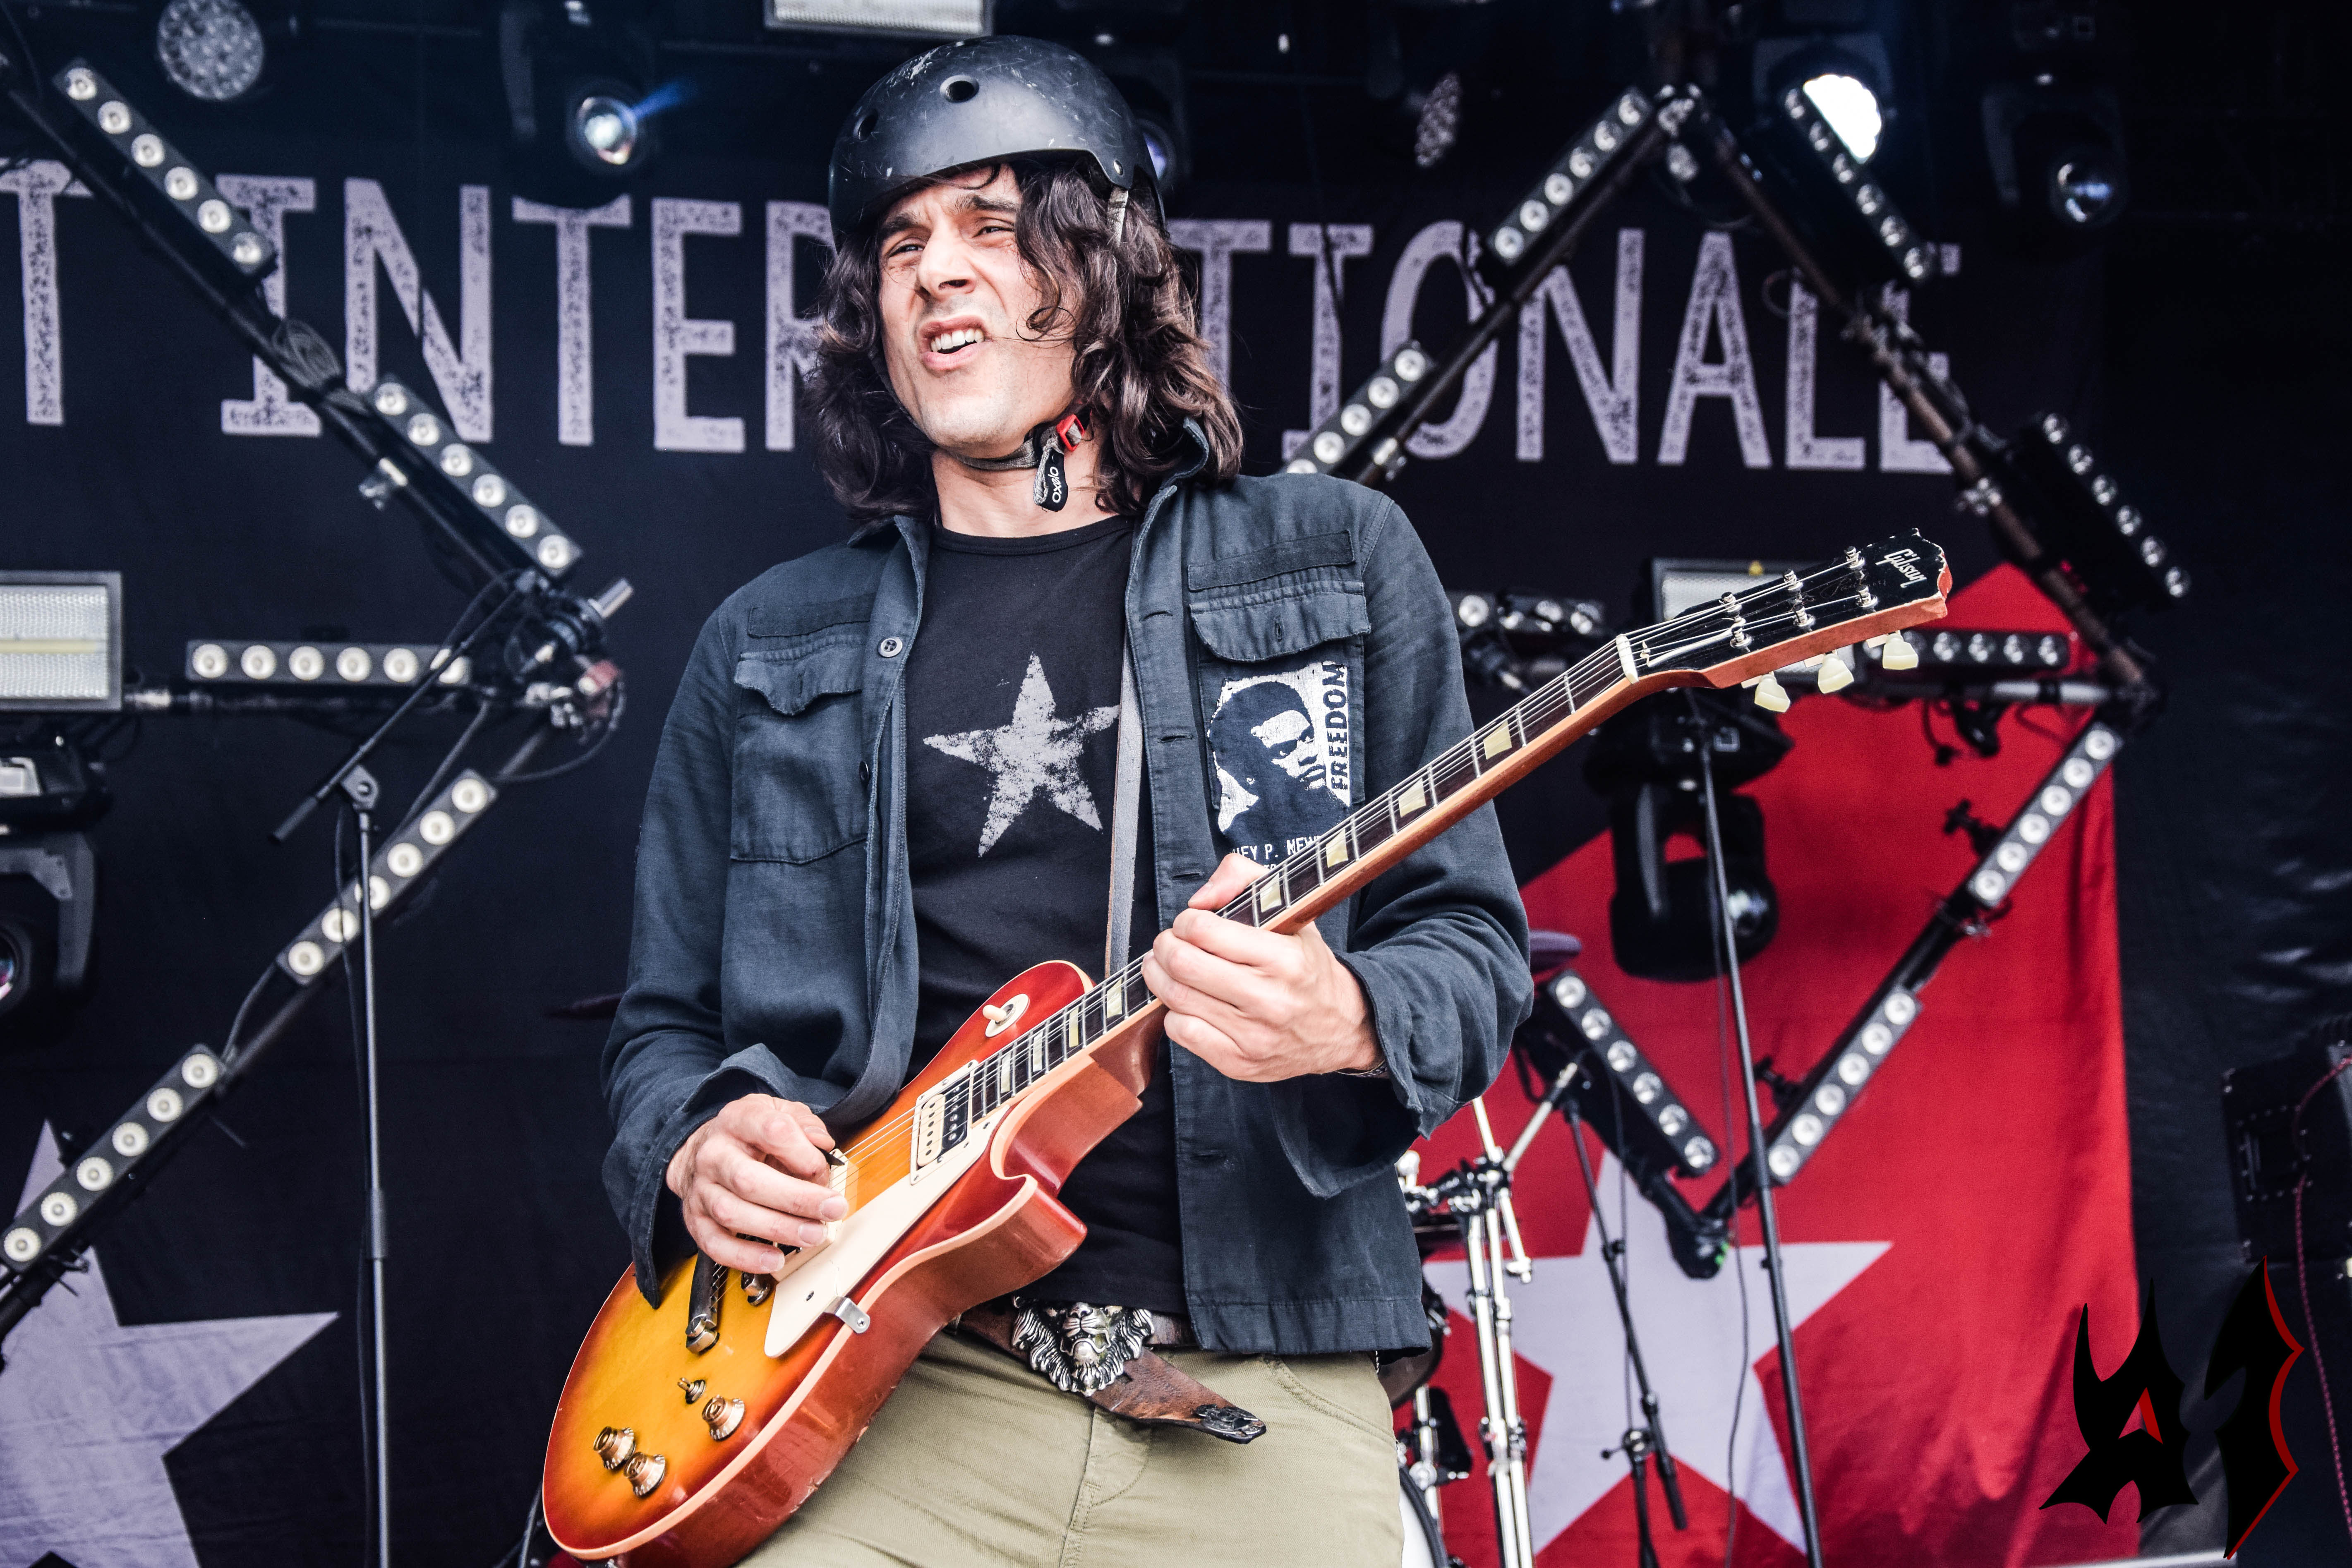 Donwload 2018 – Day 3 - The Last Internationale 22